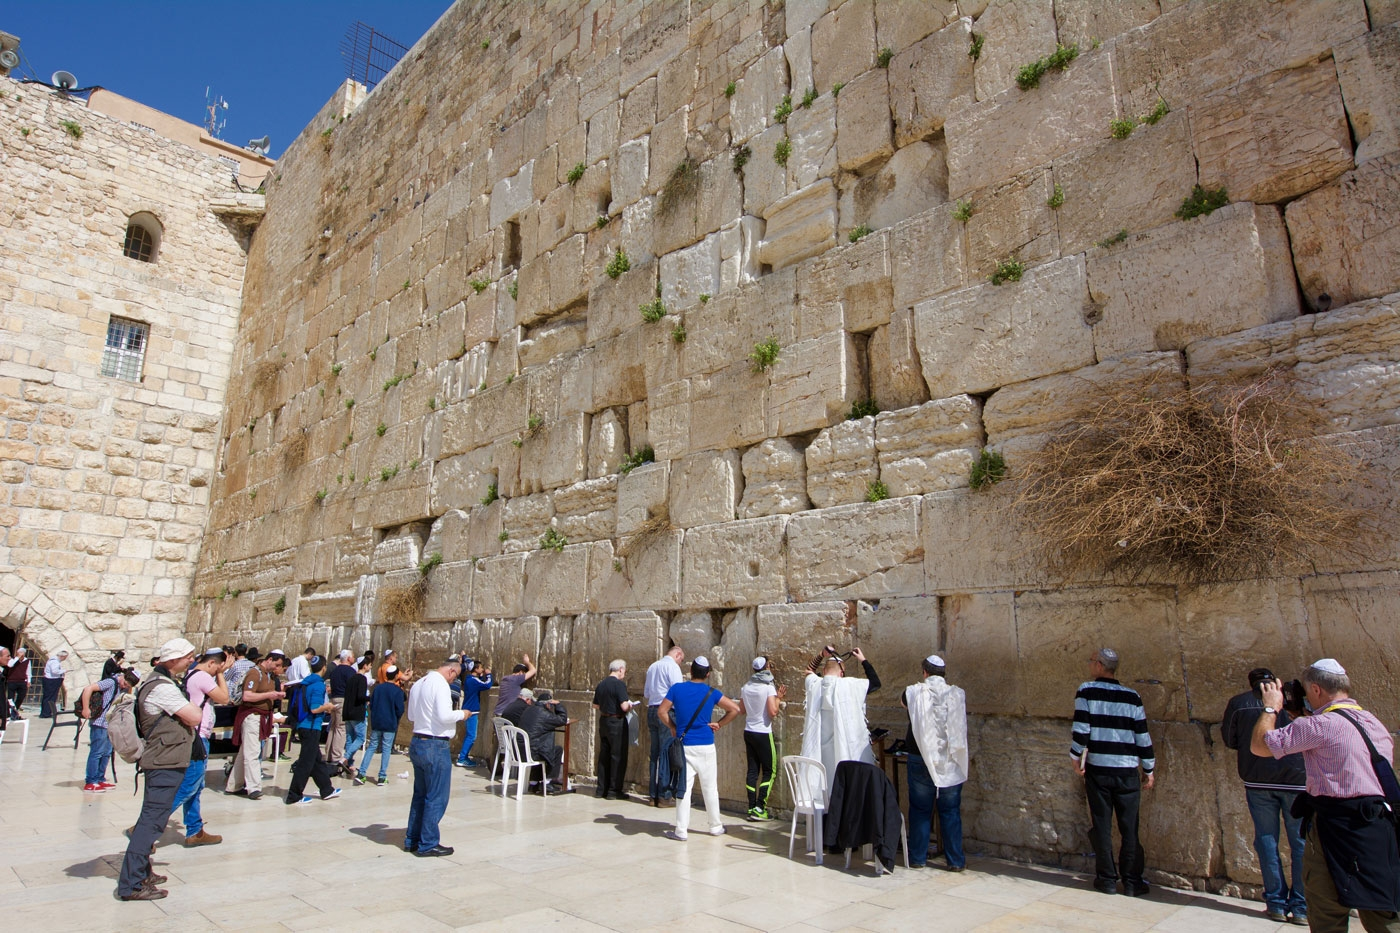 Western Wall in Jerusalem's Old City – also called Wailing Wall and the Kotel